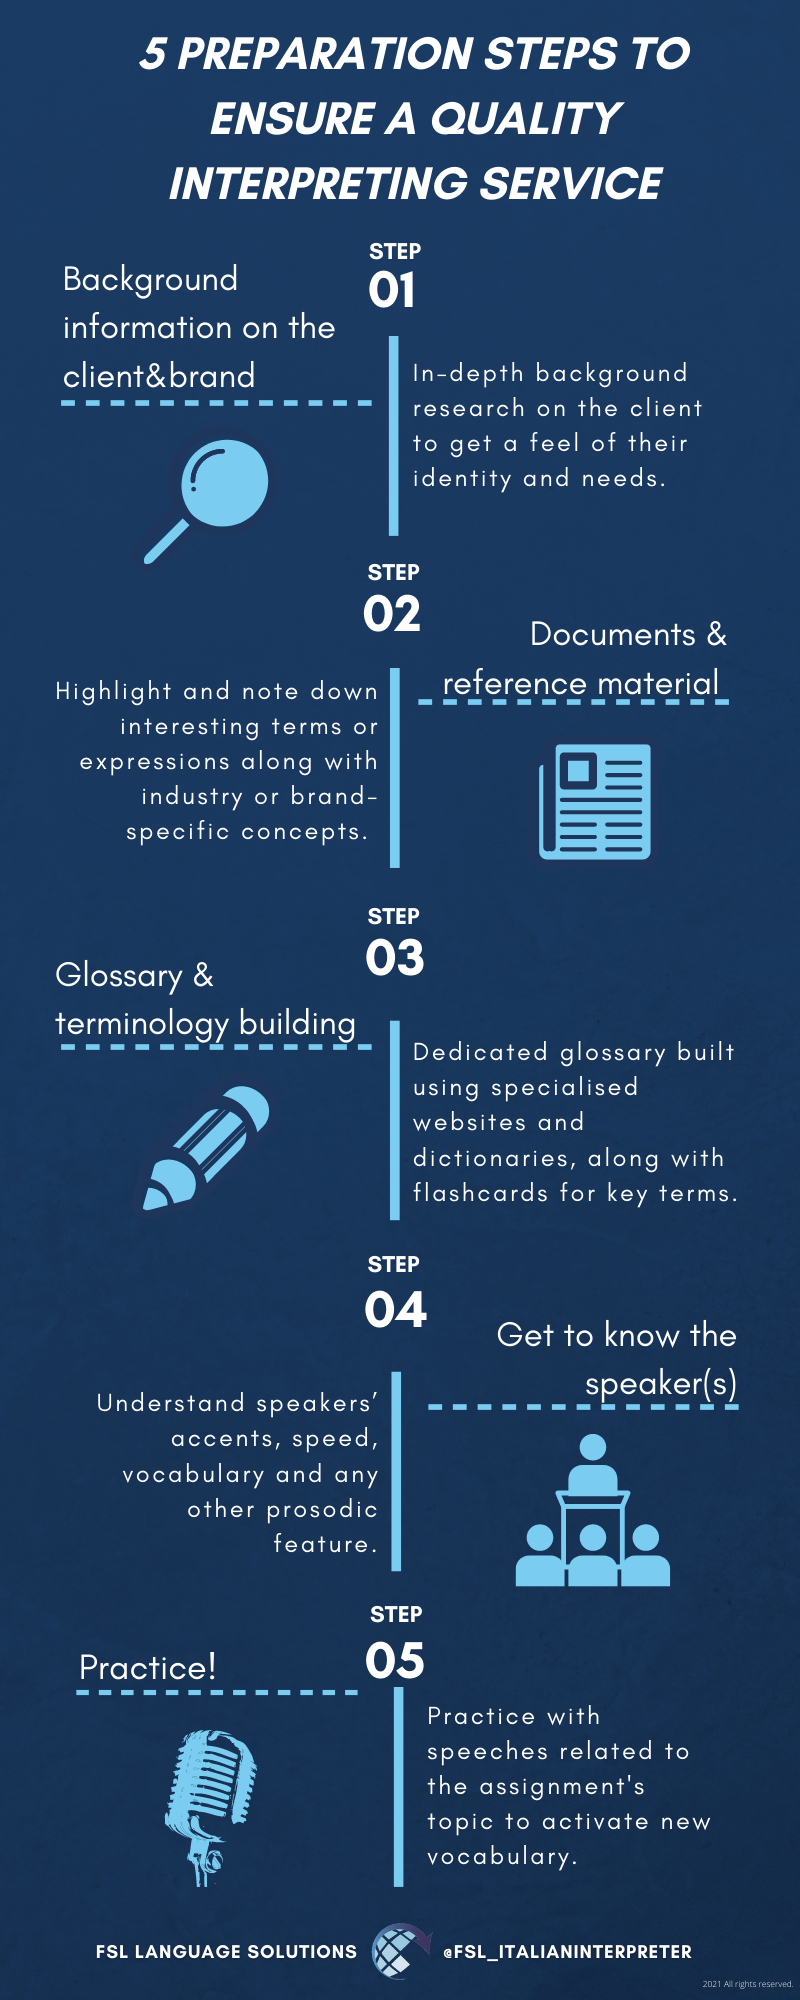 An infographic describing the 5 steps taken by FSL Language Solutions to prepare before an Italian interpreting assignment.